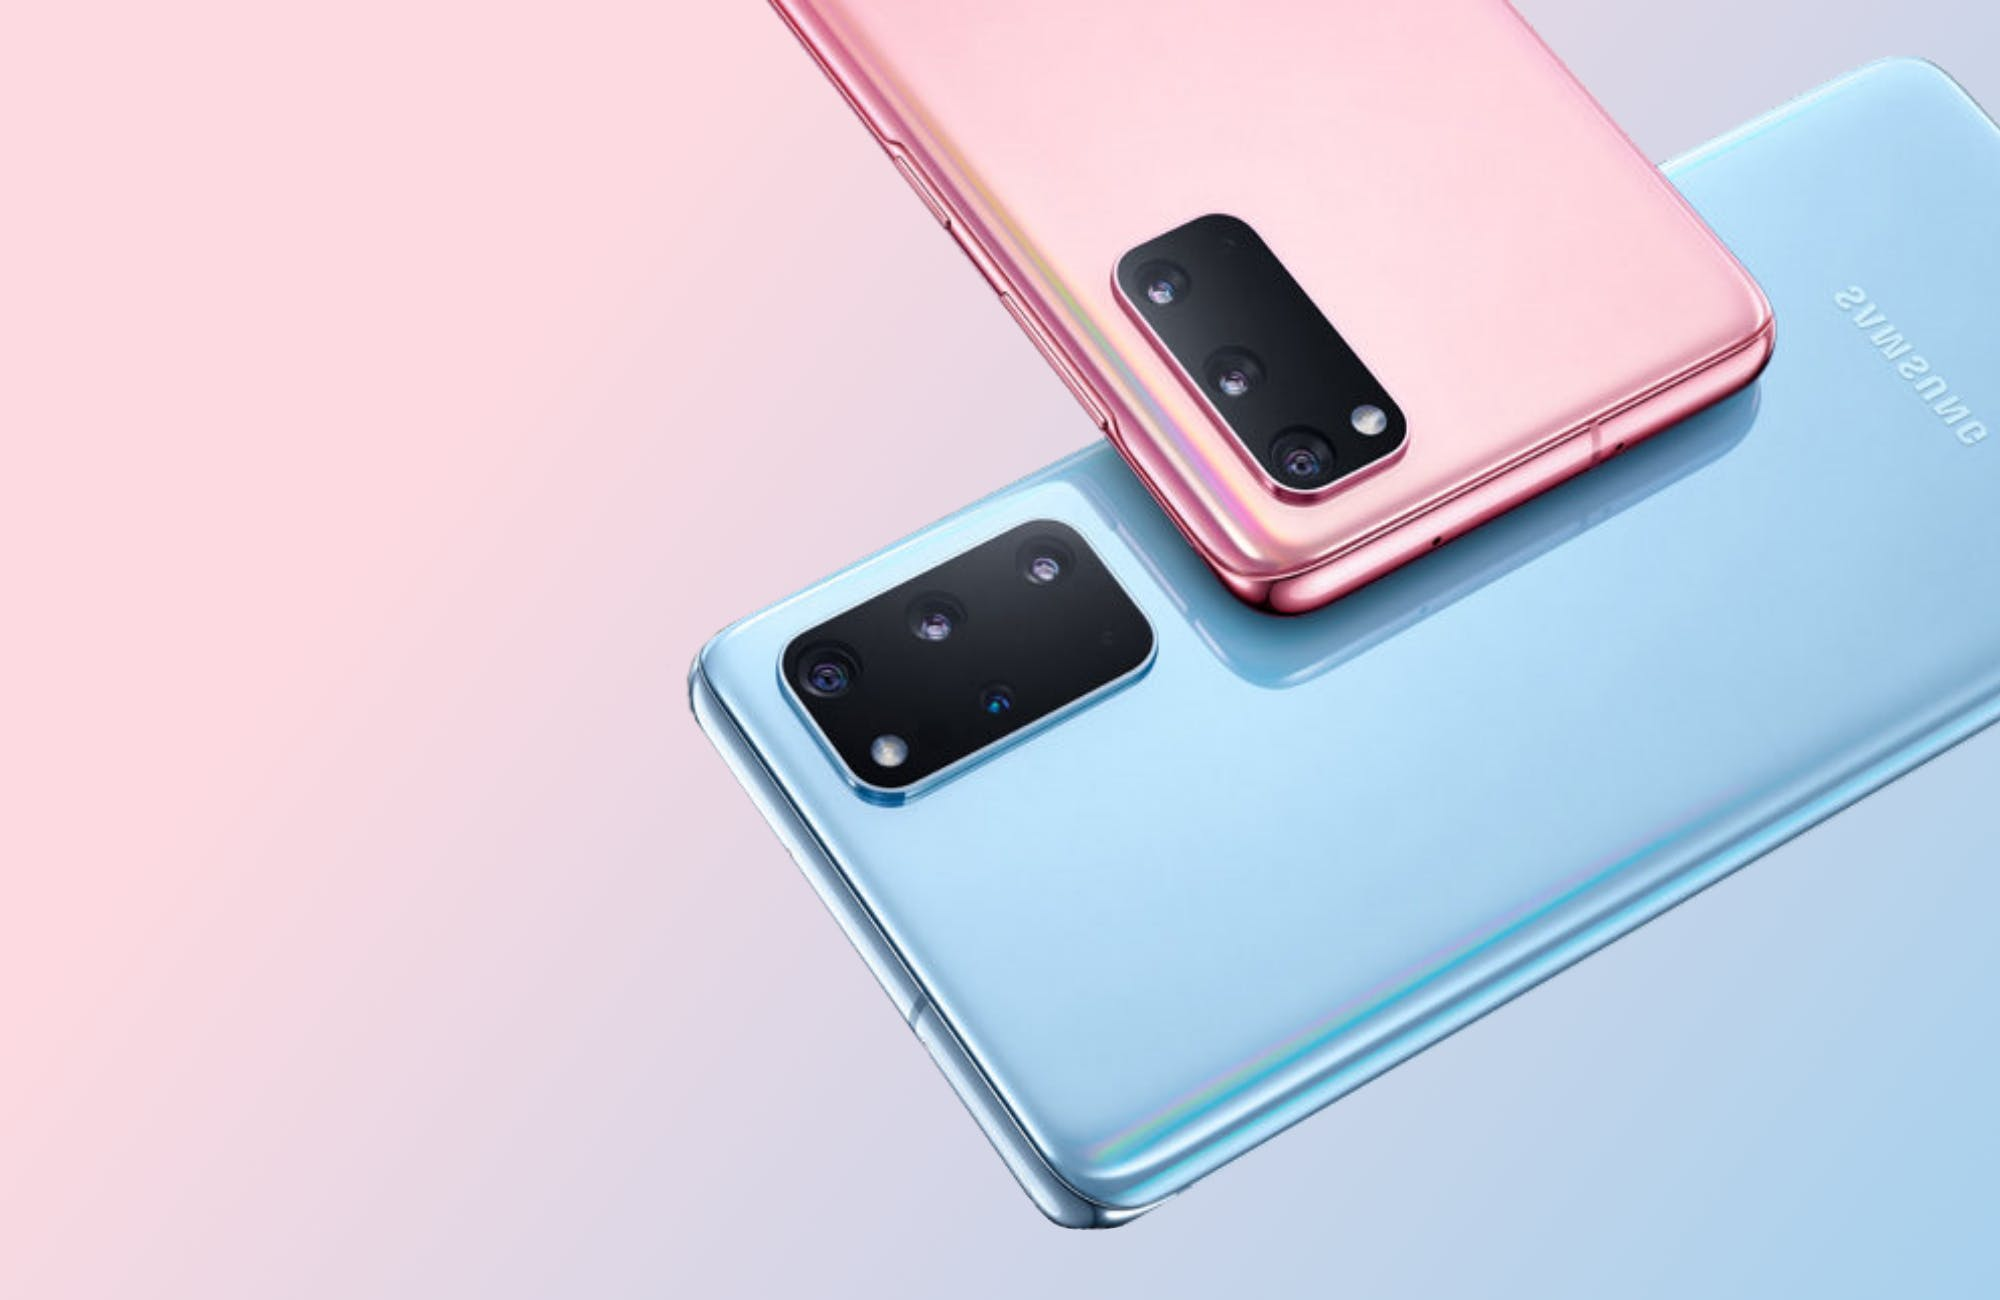 Galaxy S20 and S20 Plus: Meet the True Successors to the Galaxy S10 and S10 Plus